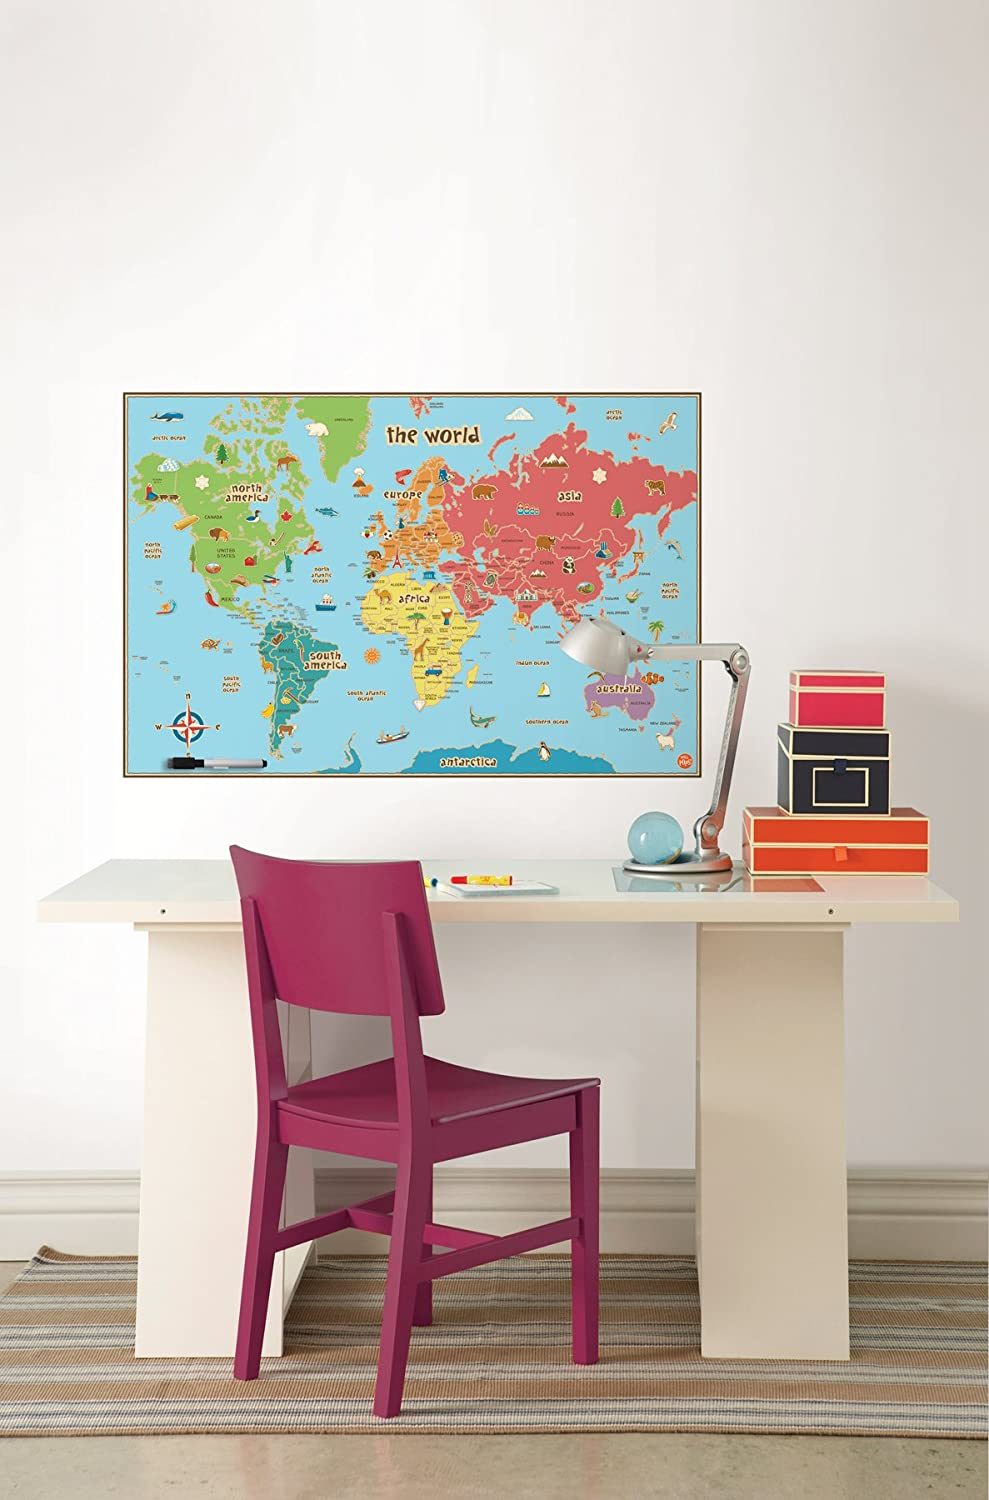 Amazoncom Wall Pops WPE Kids World Dry Erase Map Decal Wall - Us map dry erase